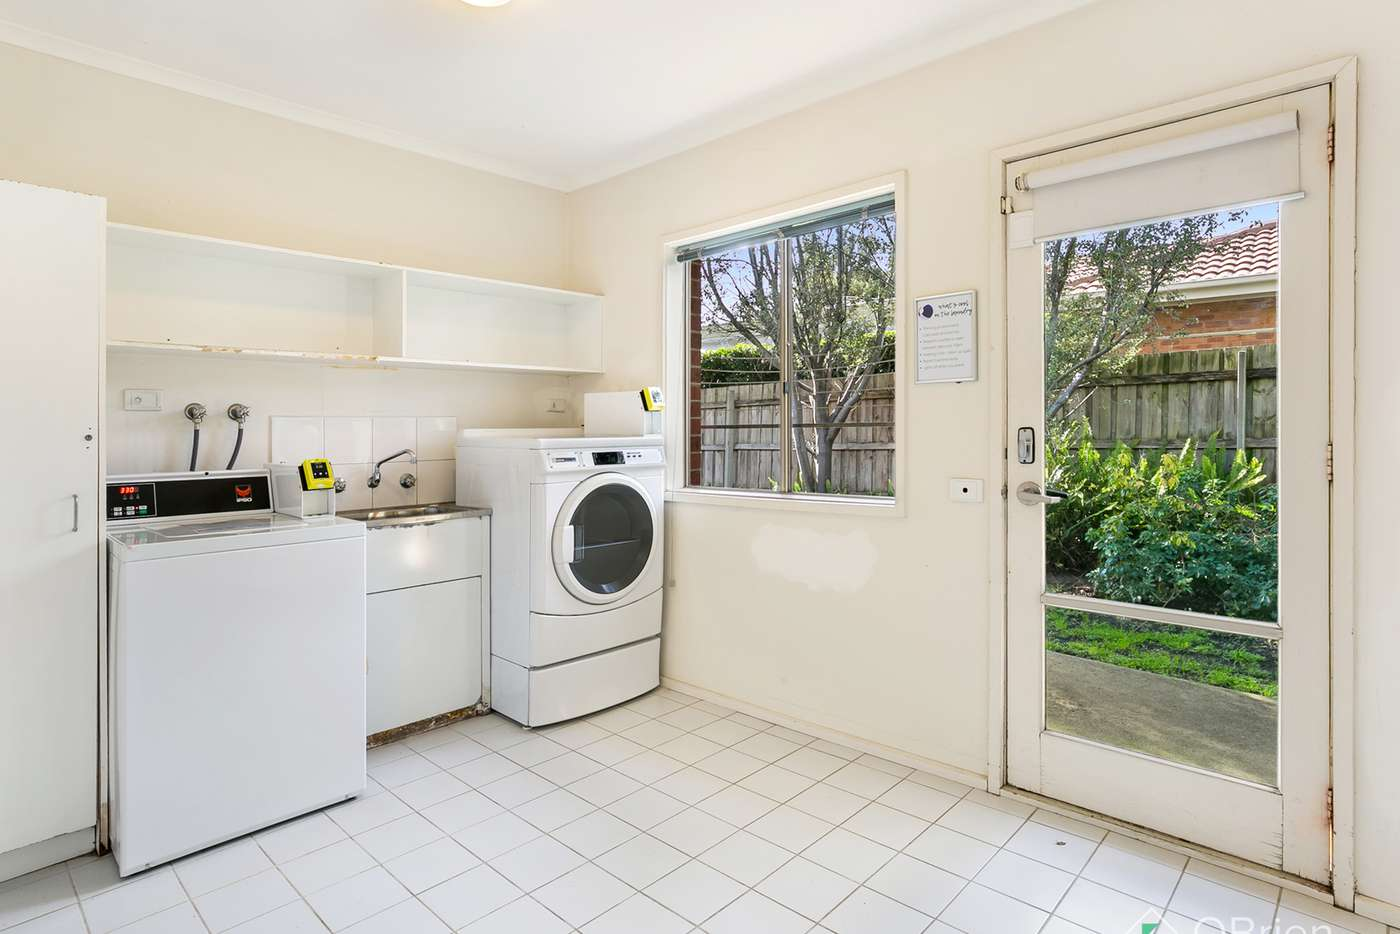 Seventh view of Homely studio listing, 11/14 Sandpiper Place, Frankston VIC 3199